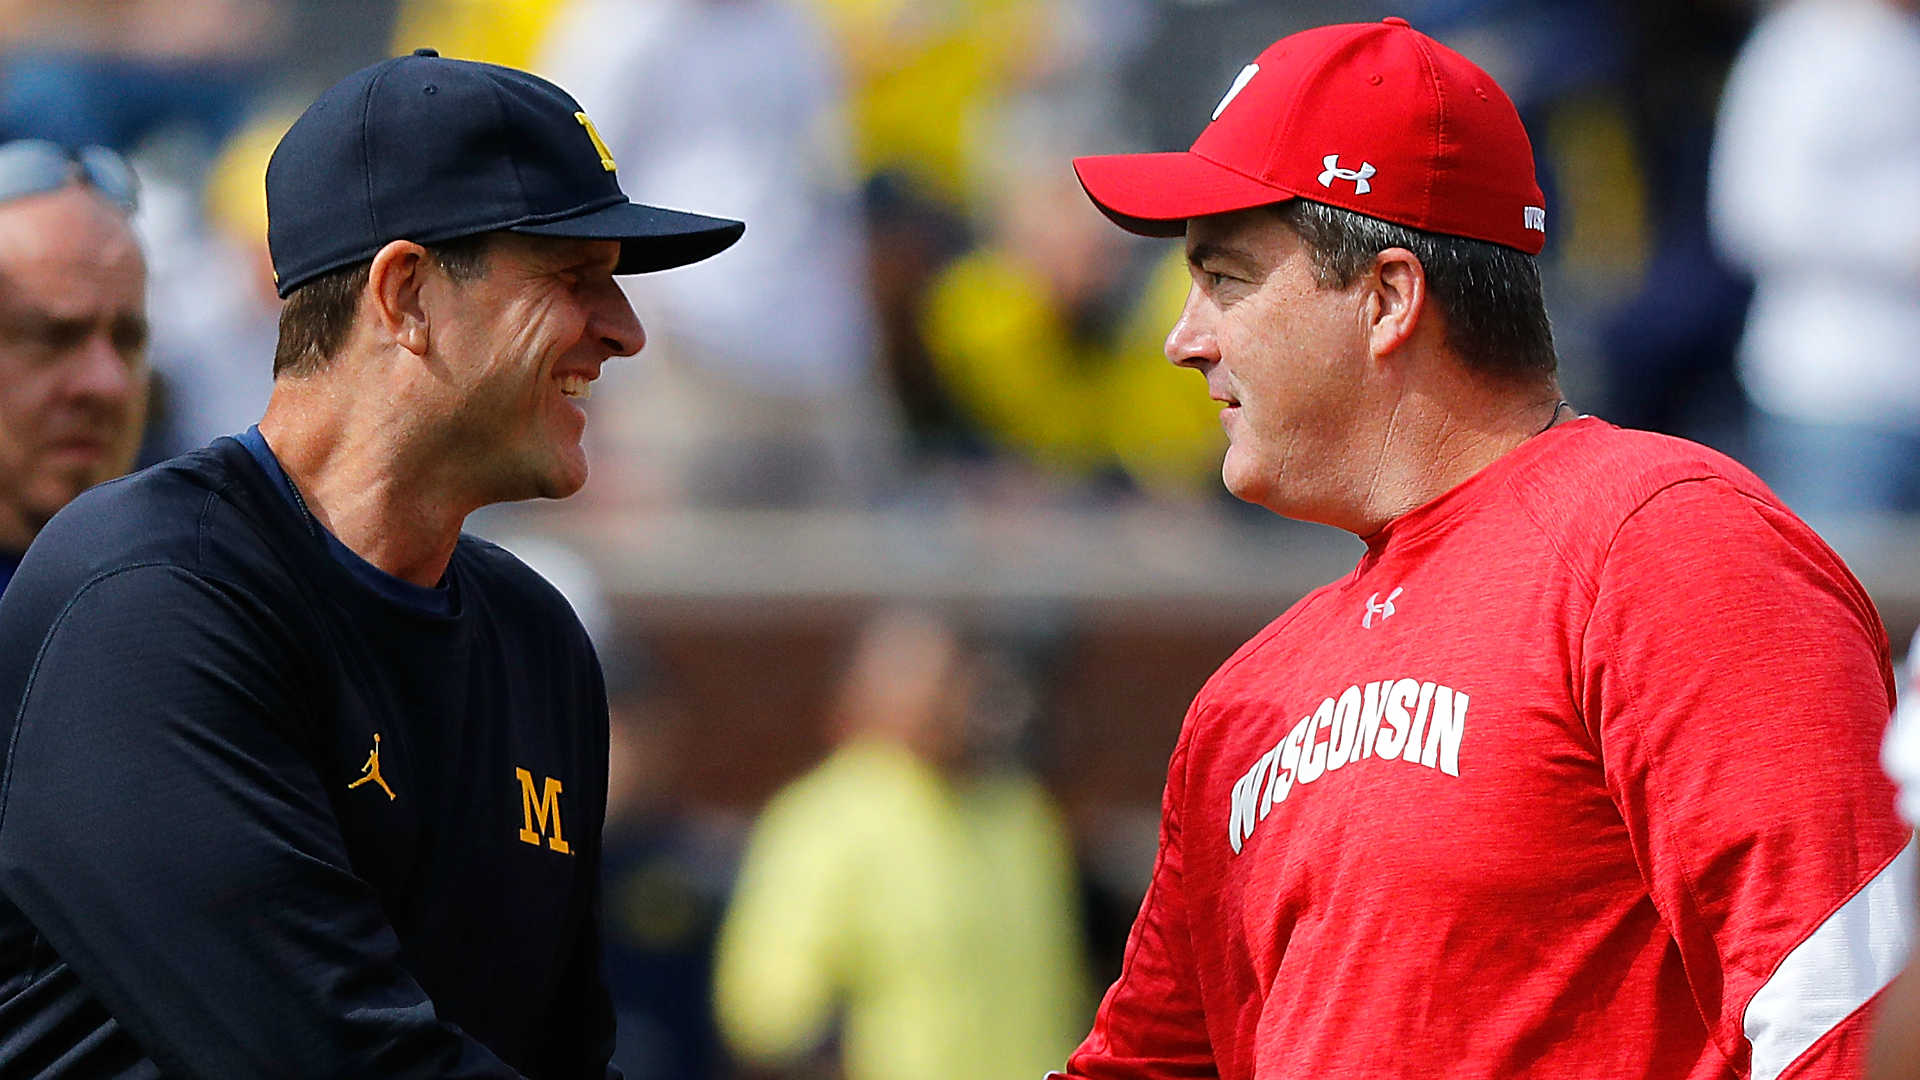 Wisconsin-Michigan crossover game tops Big Ten's schedule